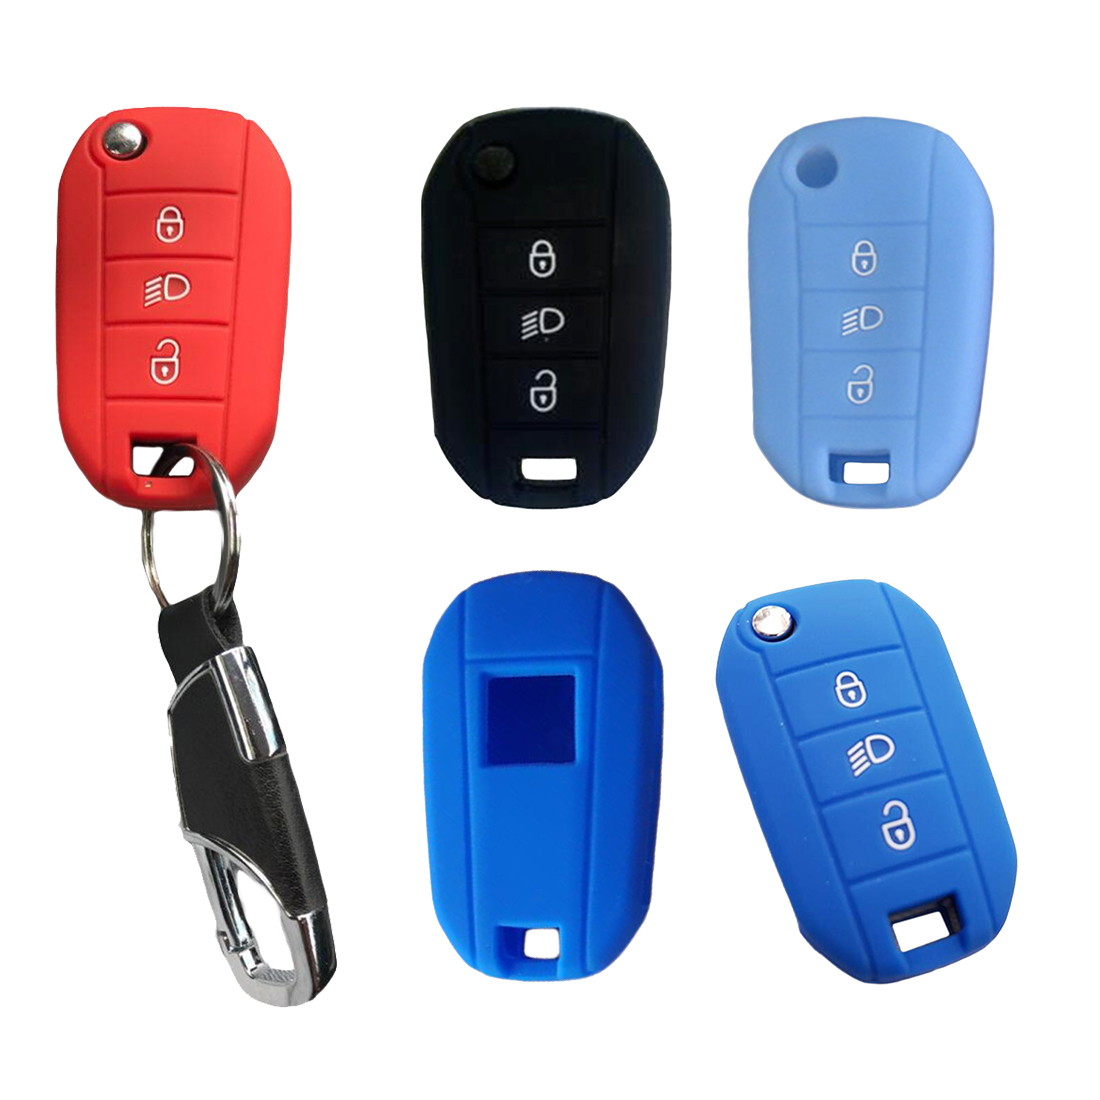 Dewtreetali Car <font><b>Key</b></font> Fob Silicone Cover Case Shell Hood <font><b>Remote</b></font> Keyless Protector for <font><b>Peugeot</b></font> 3008 <font><b>208</b></font> 308 RCZ 508 408 2008 image